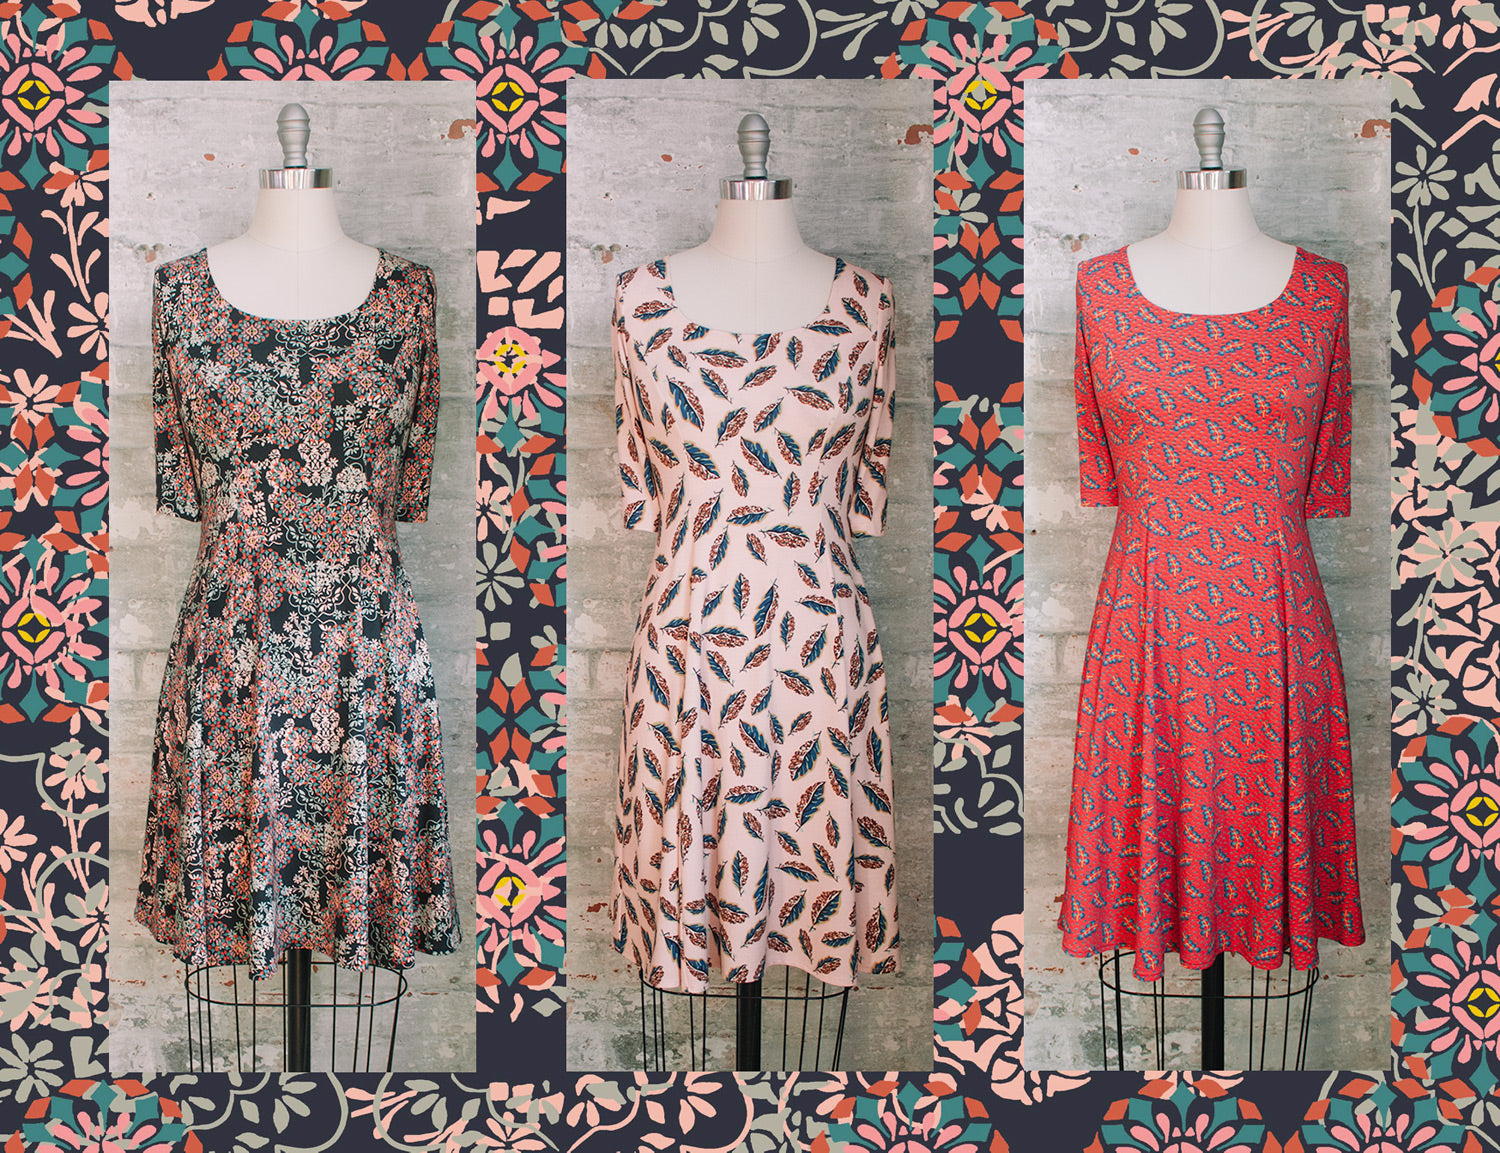 Womens Liberty Print Dresses